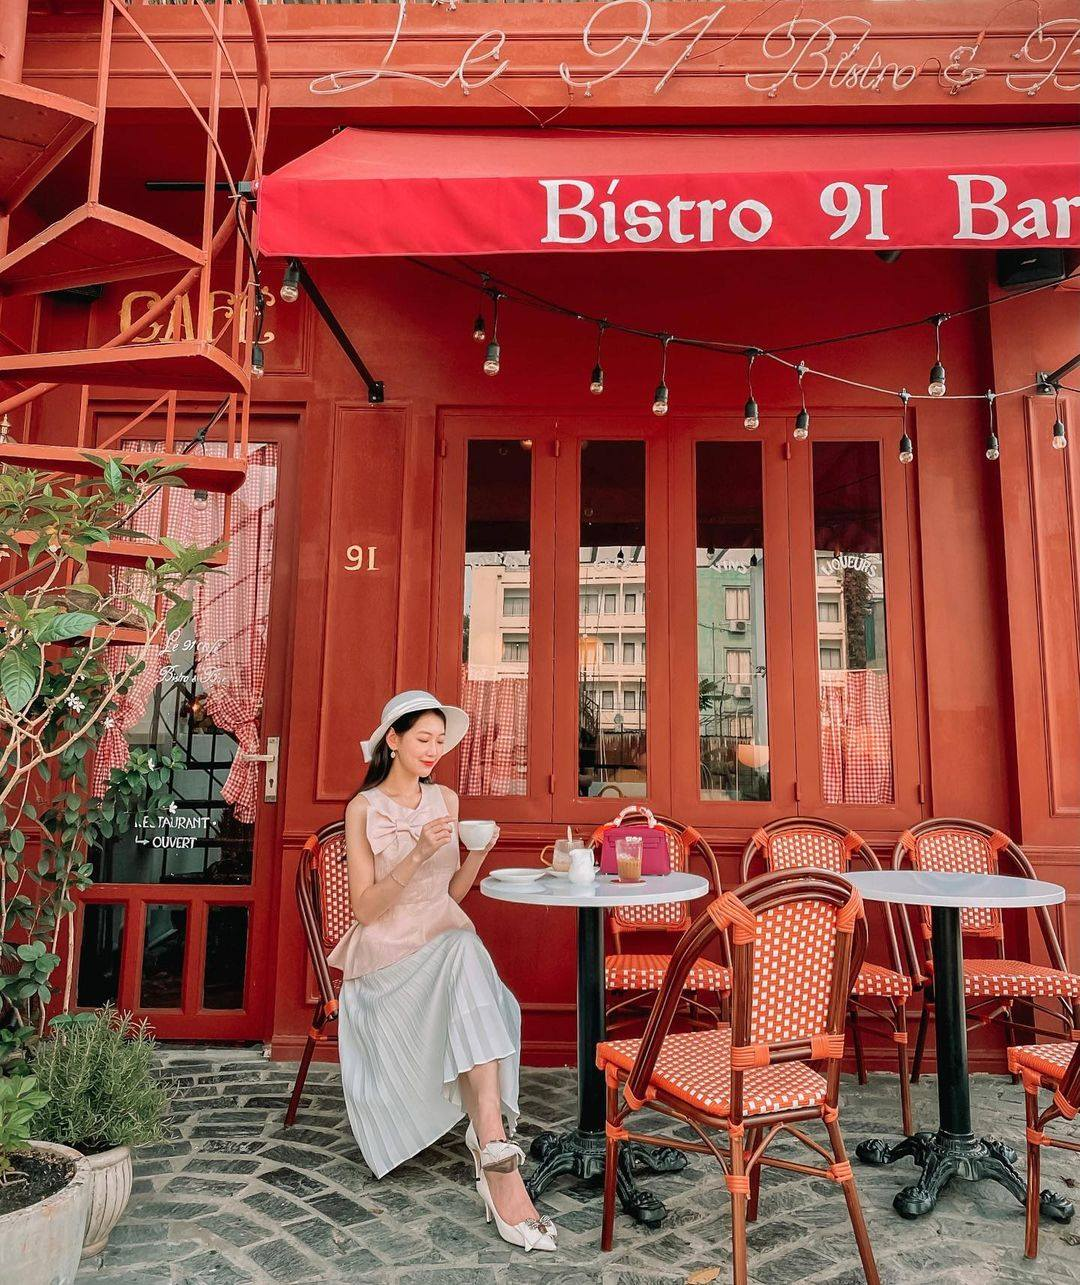 Le 91 Bistro & Bar - Saigon